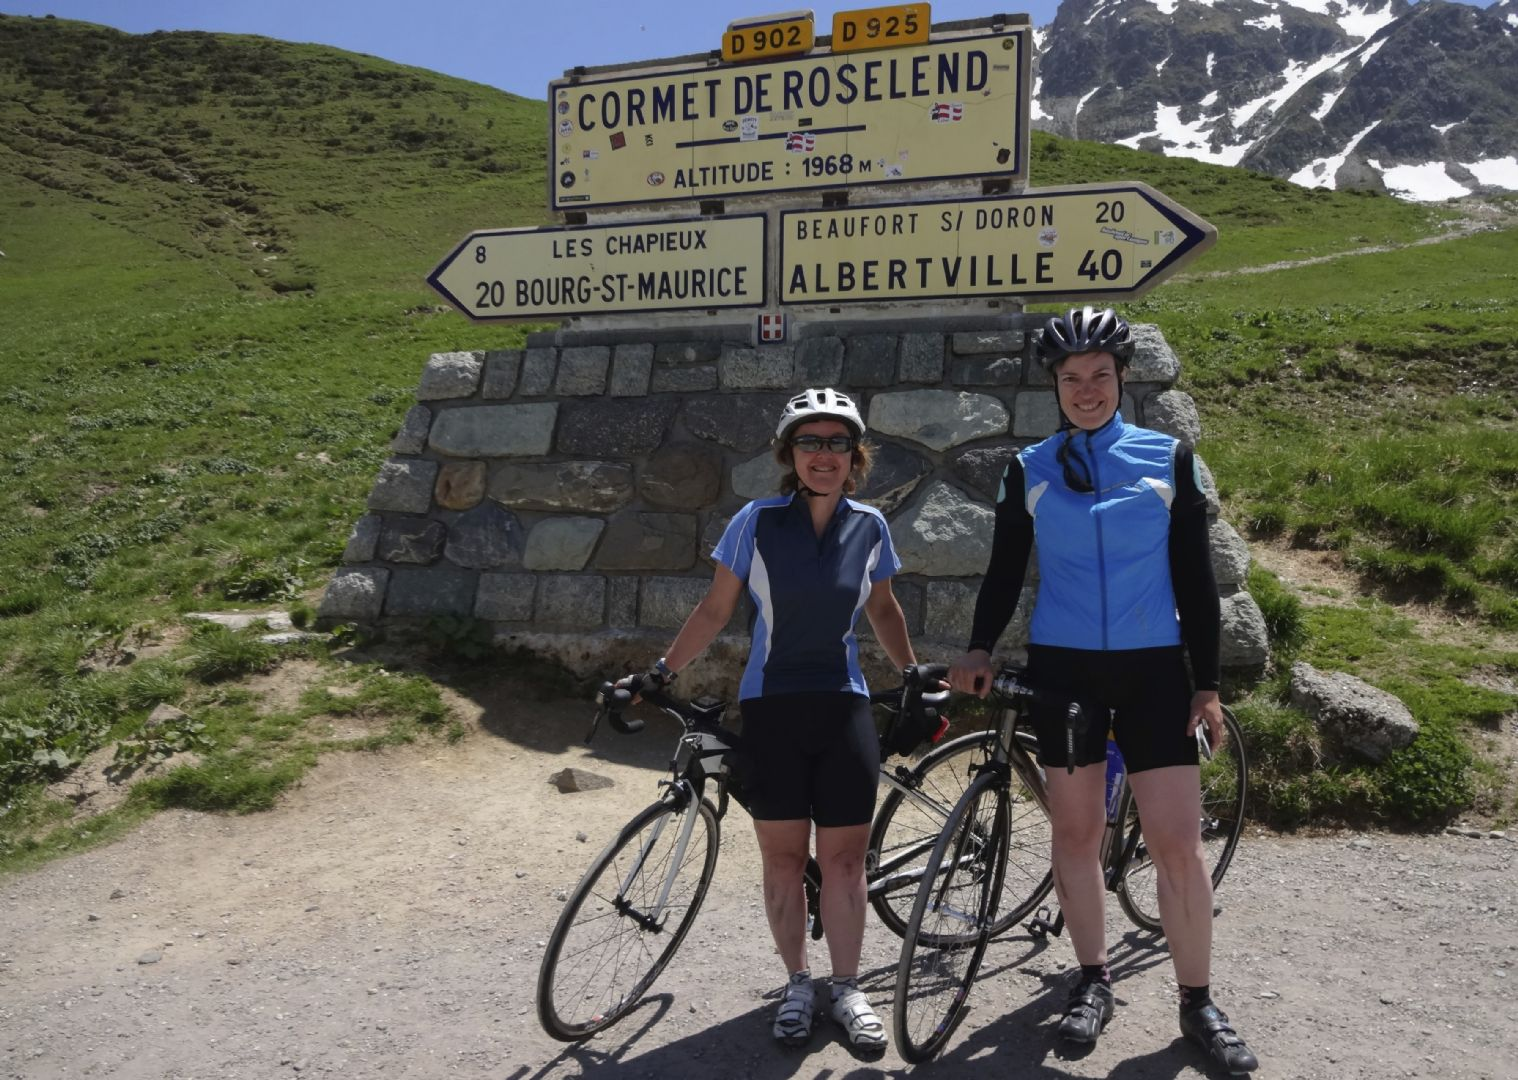 _Customer.57945.17241.jpg - France - Classic Alps Passes - Alpine Introduction - Guided Road Cycling Holiday - Road Cycling